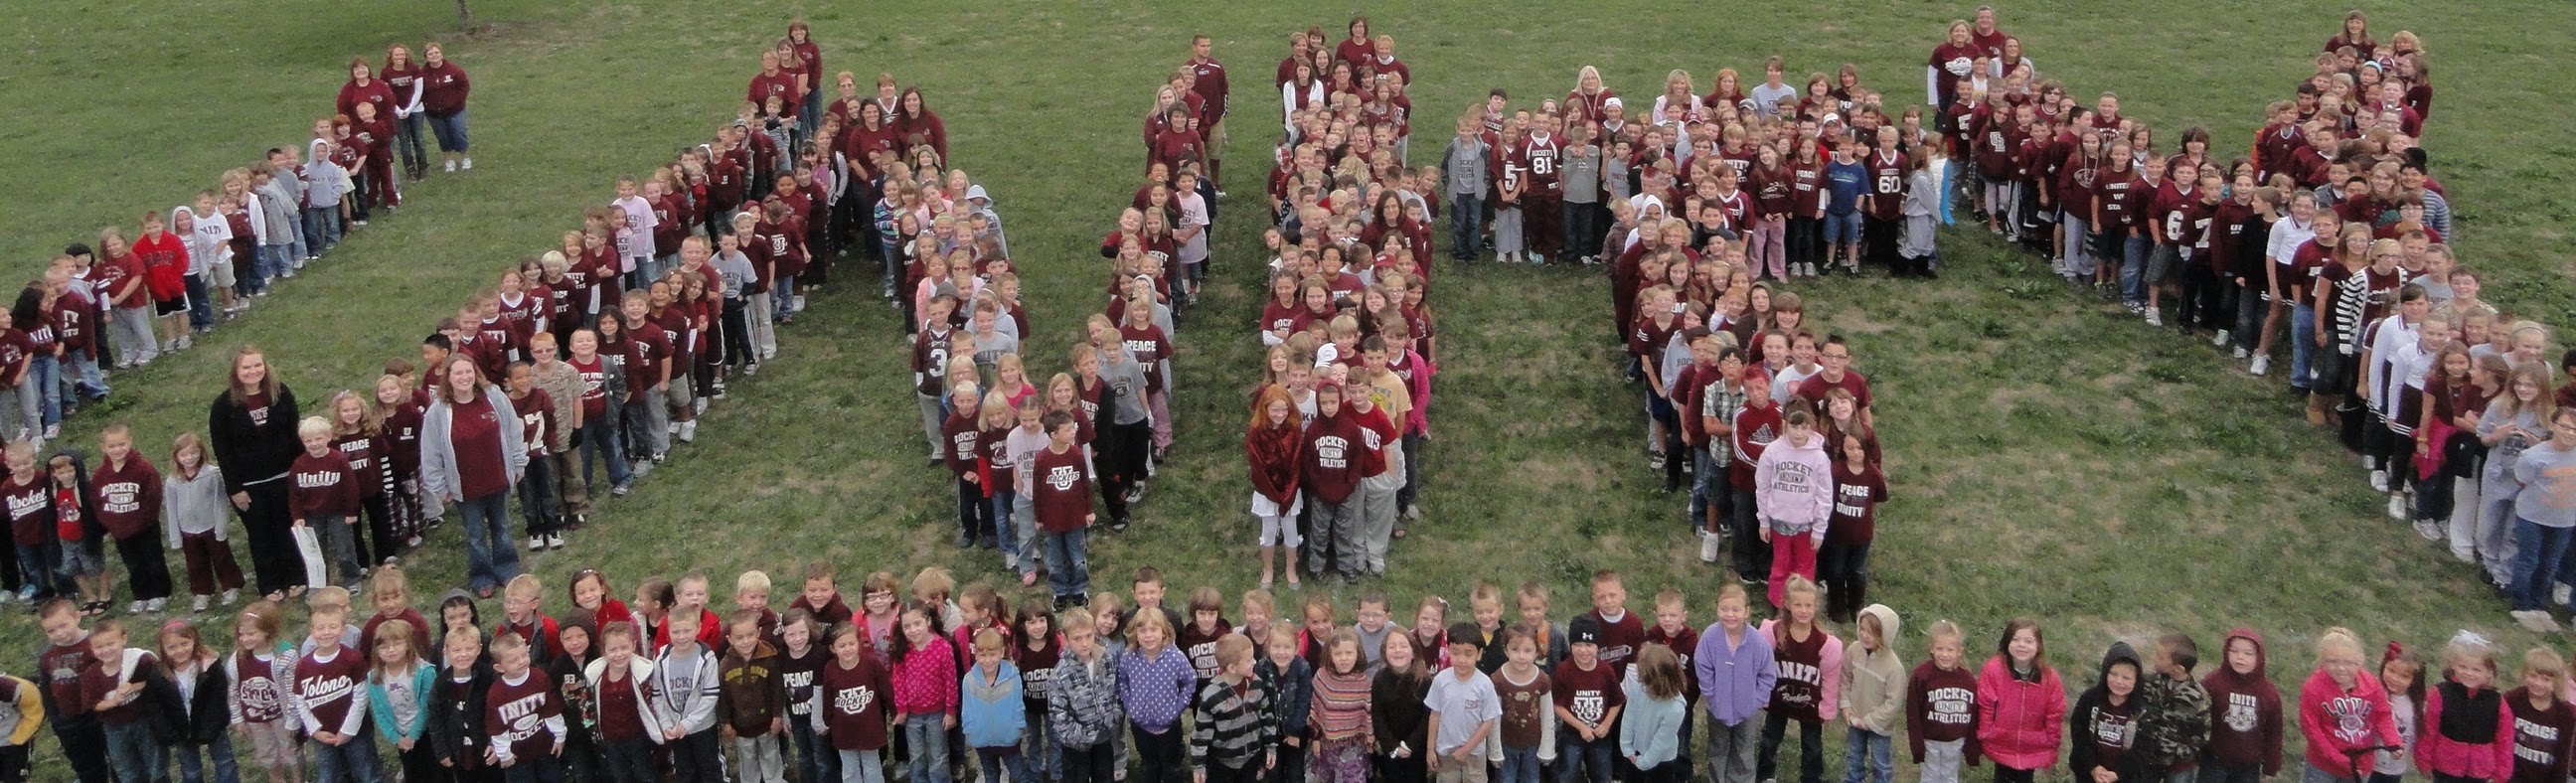 Unity West Student Body Picture